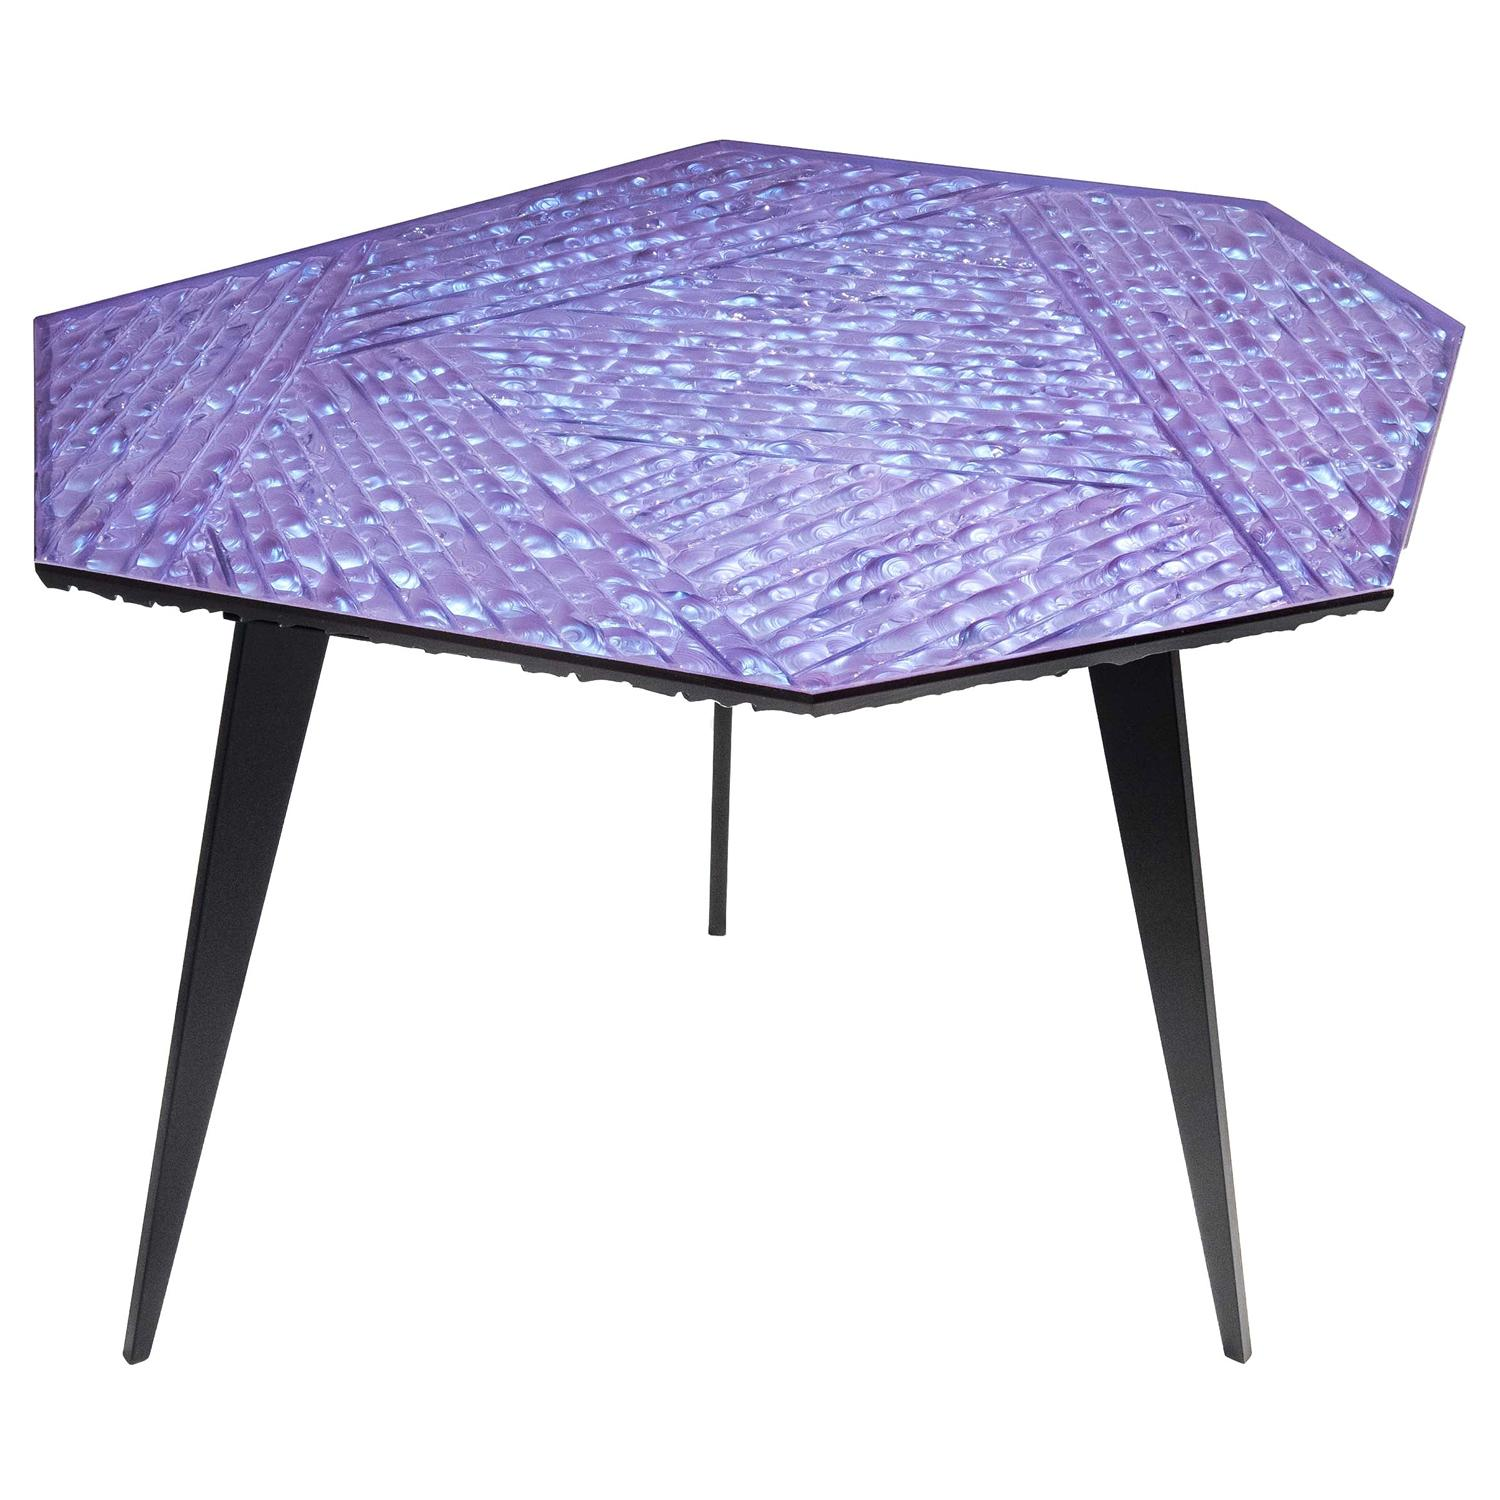 Contemporary by Ghirò Studio 'Velluto' Coffee Table blue Crystal and Black Brass